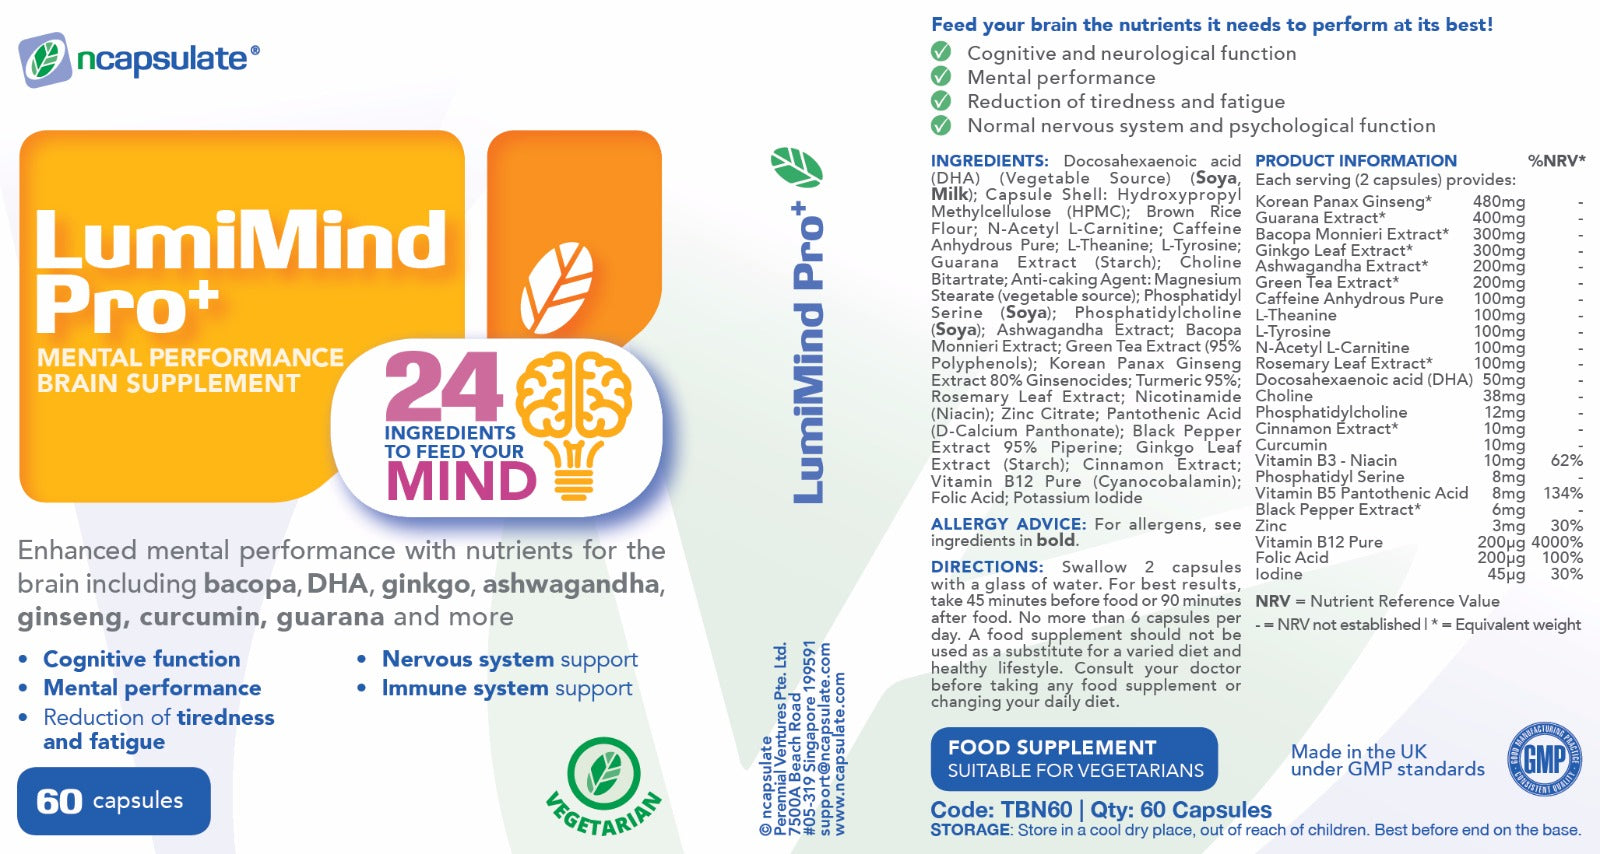 ncapsulate® LUMIMIND PRO+ Premium Health Supplement Product Label